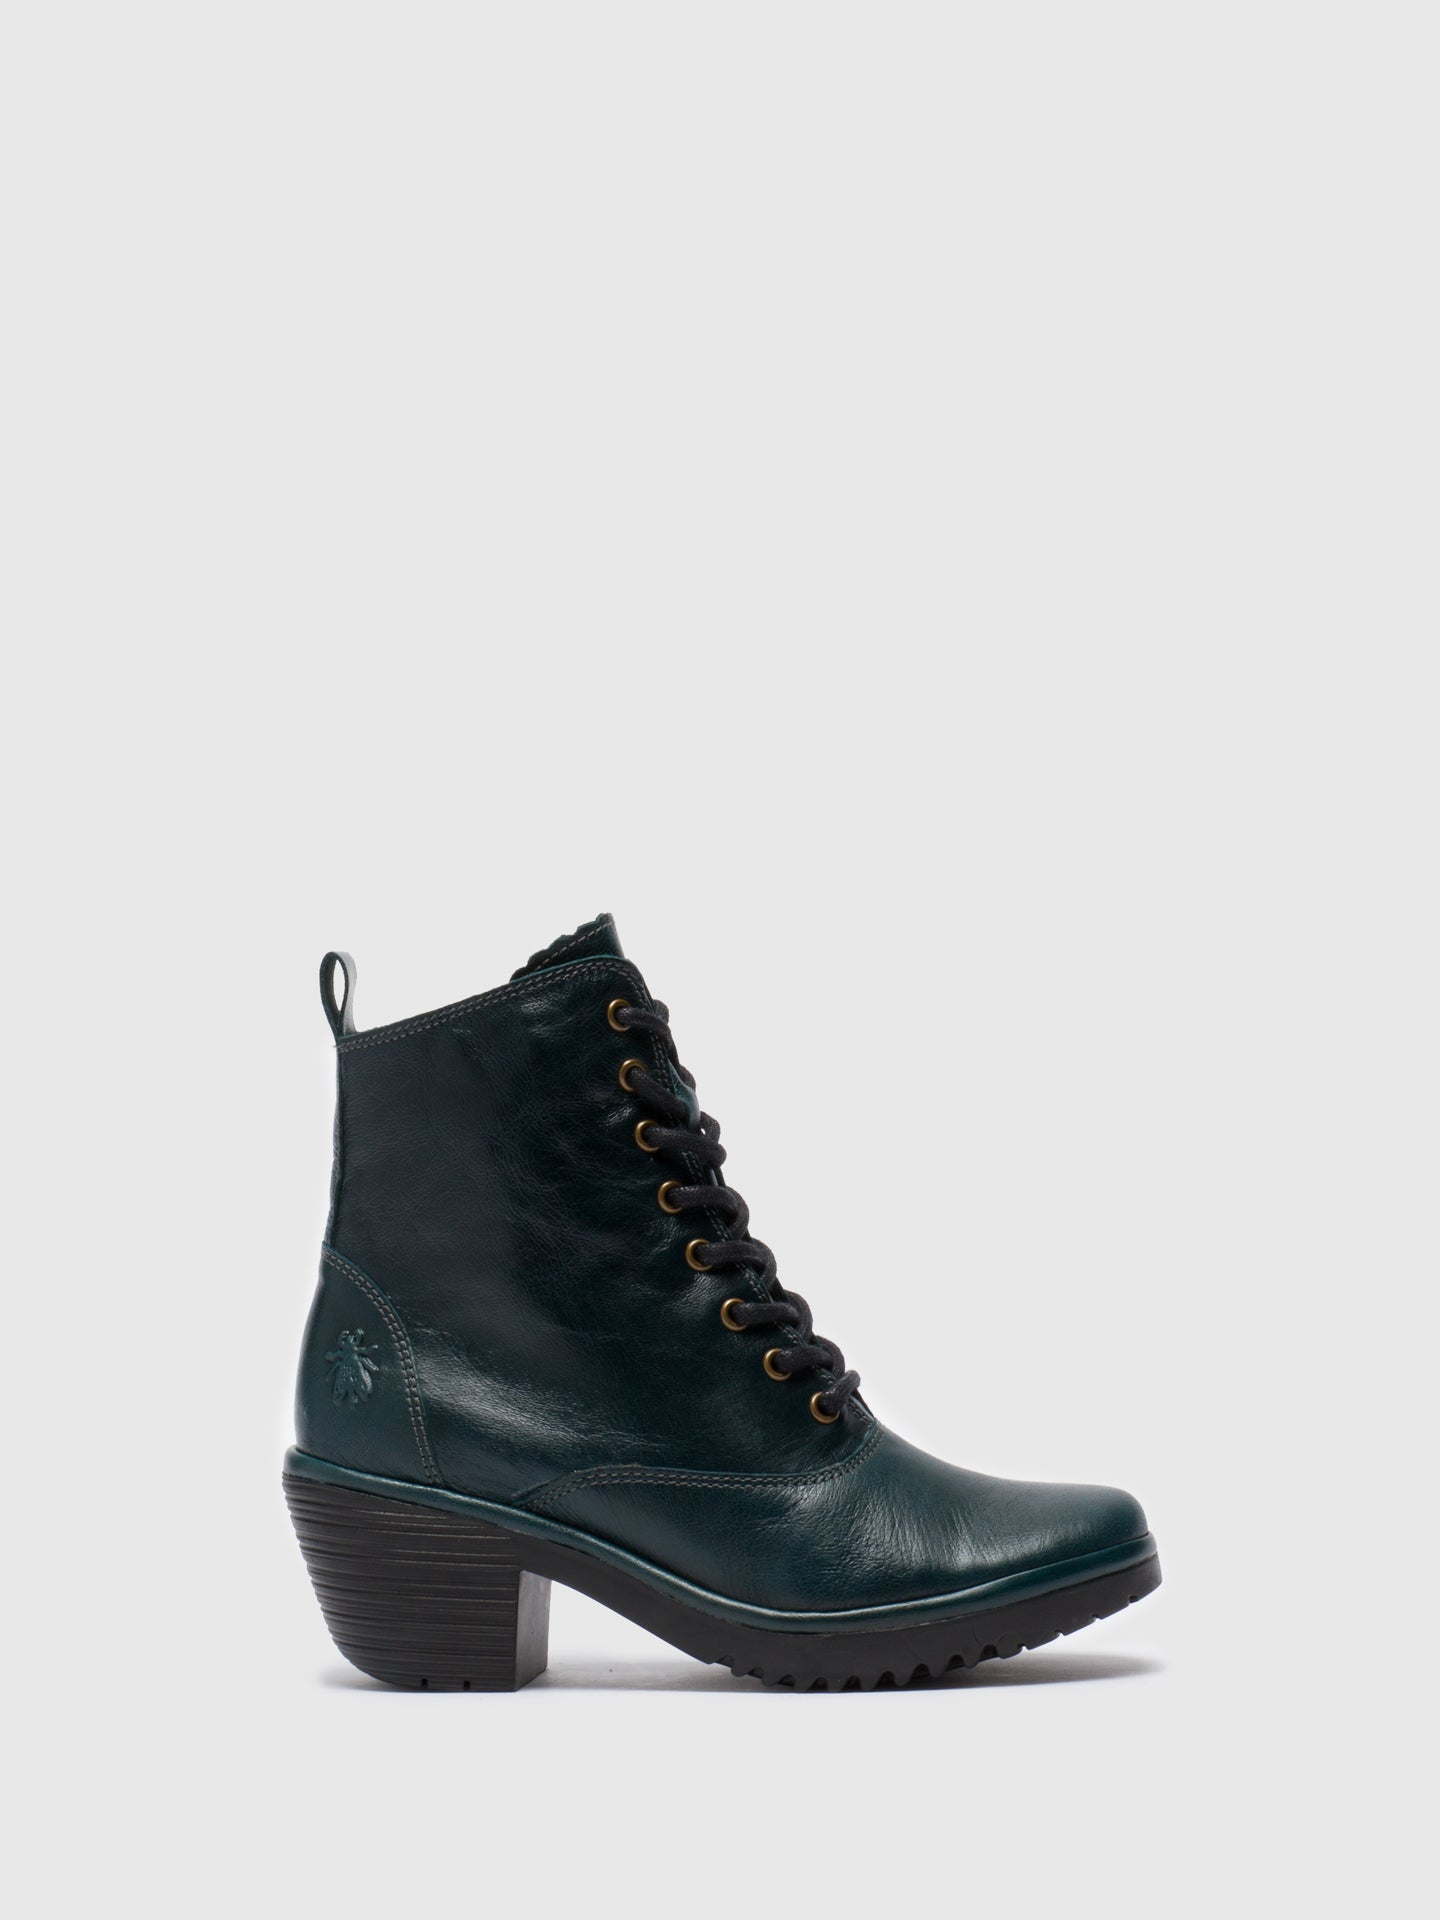 Fly London DarkGreen Lace-up Ankle Boots